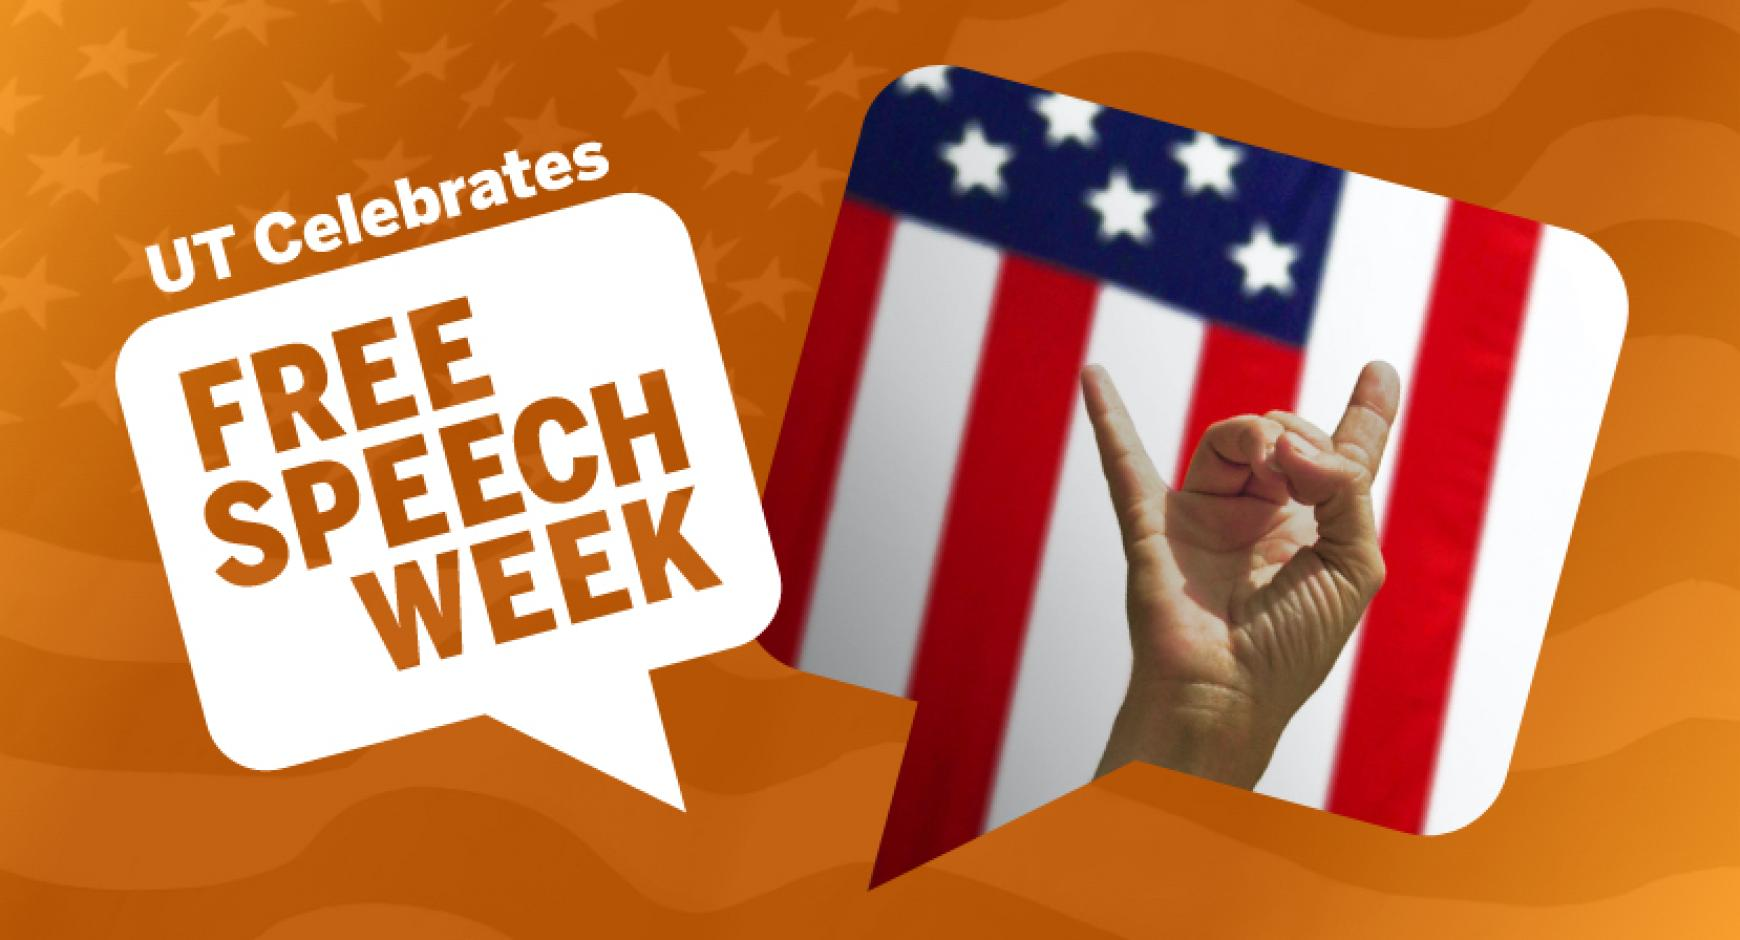 UT Celebrates Free Speech Week. Hand with Hook 'em hand sign in talk bubble with USA flag in background